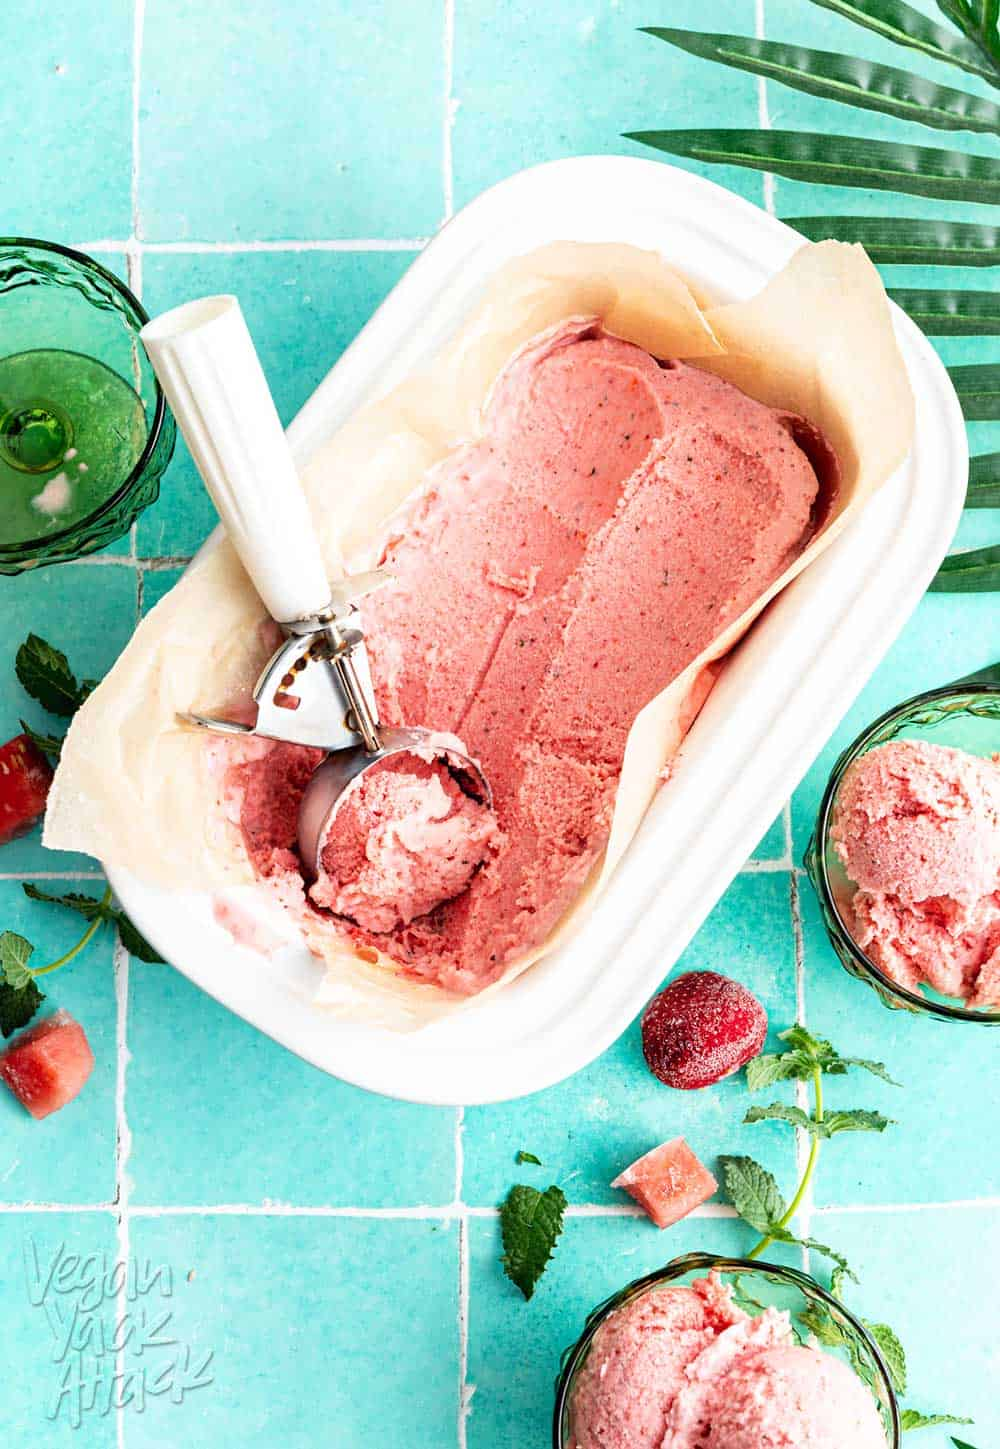 Scoops of watermelon sherbet ice cream in green glasses on teal tile with text overlay